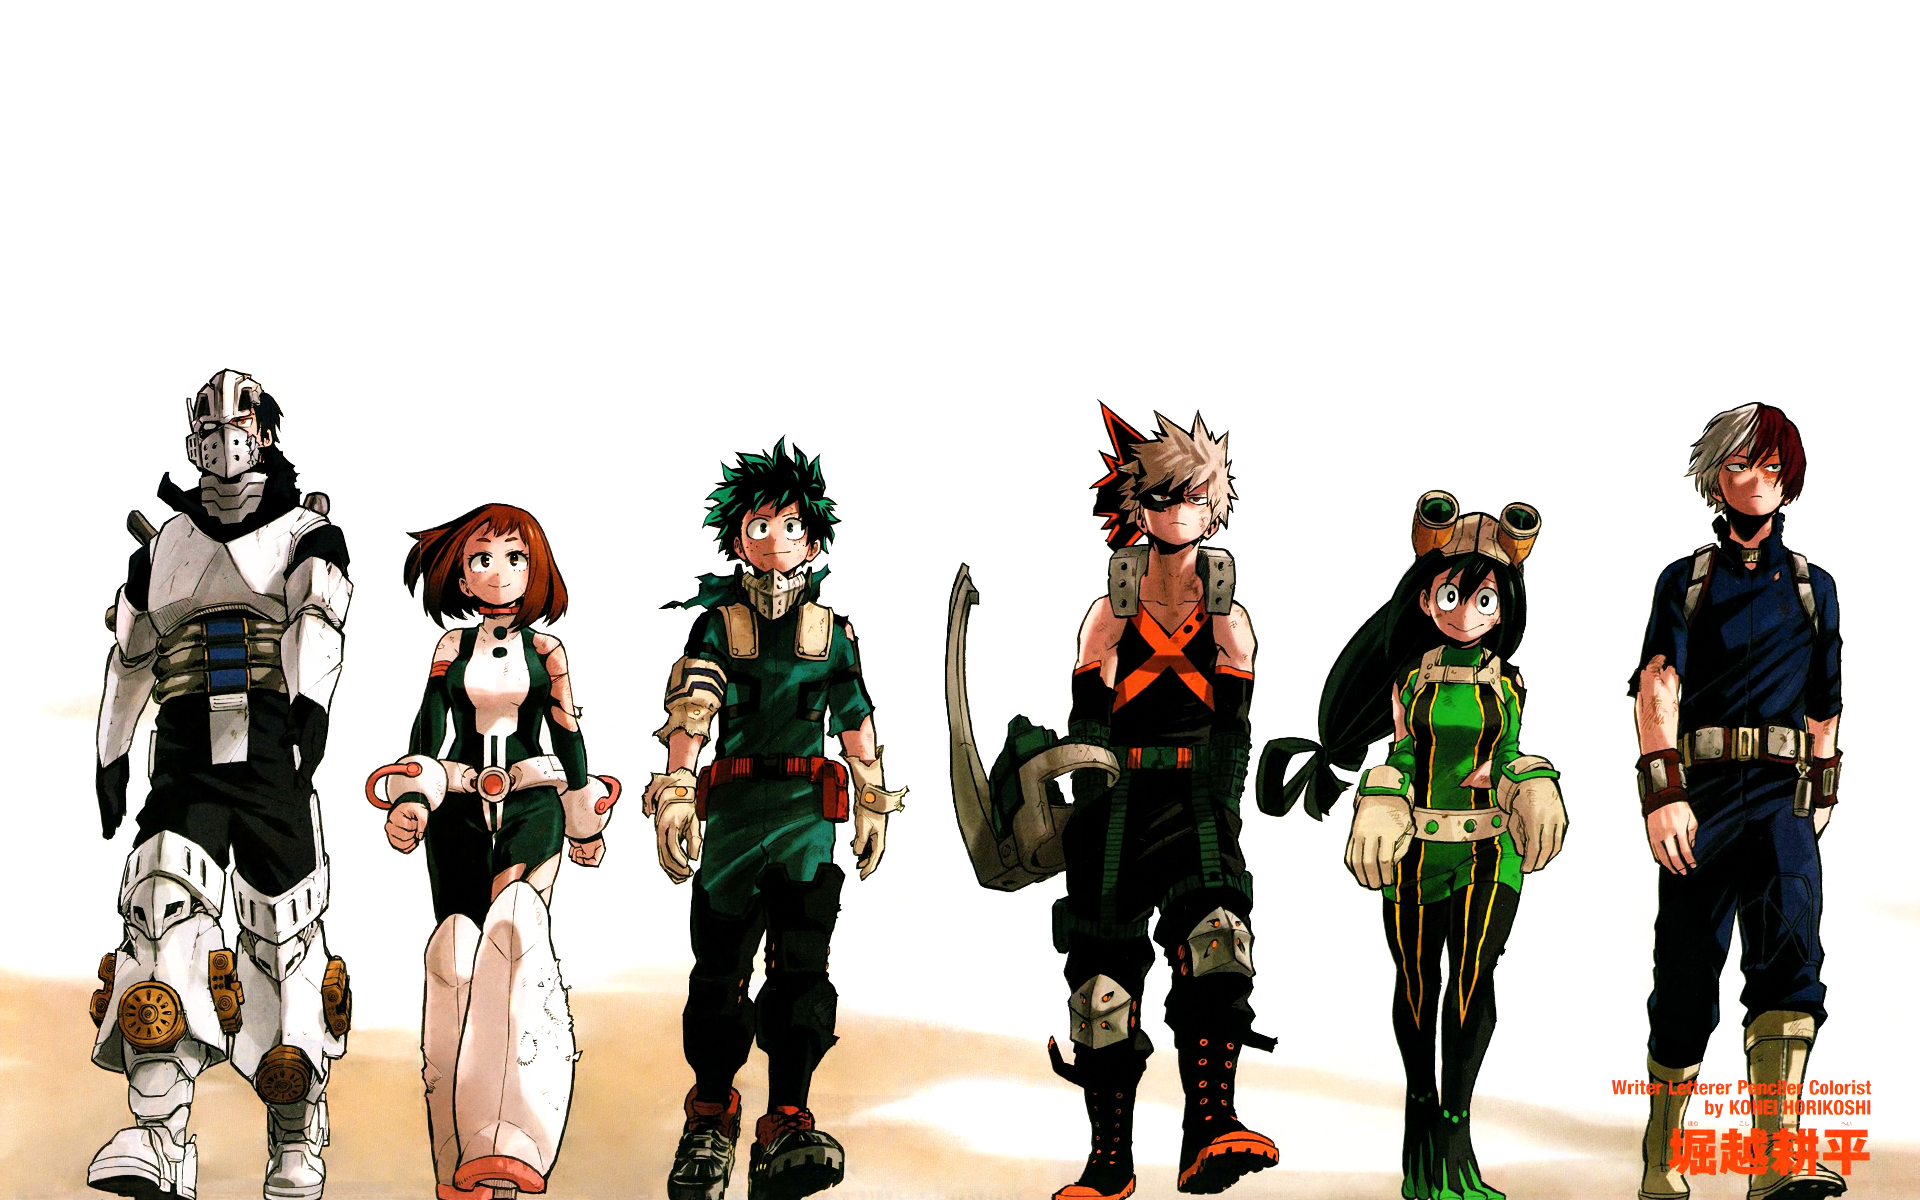 Anime Boku No Hero Academia Wallpaper My Hero Academia Hero Boku No Hero Academia